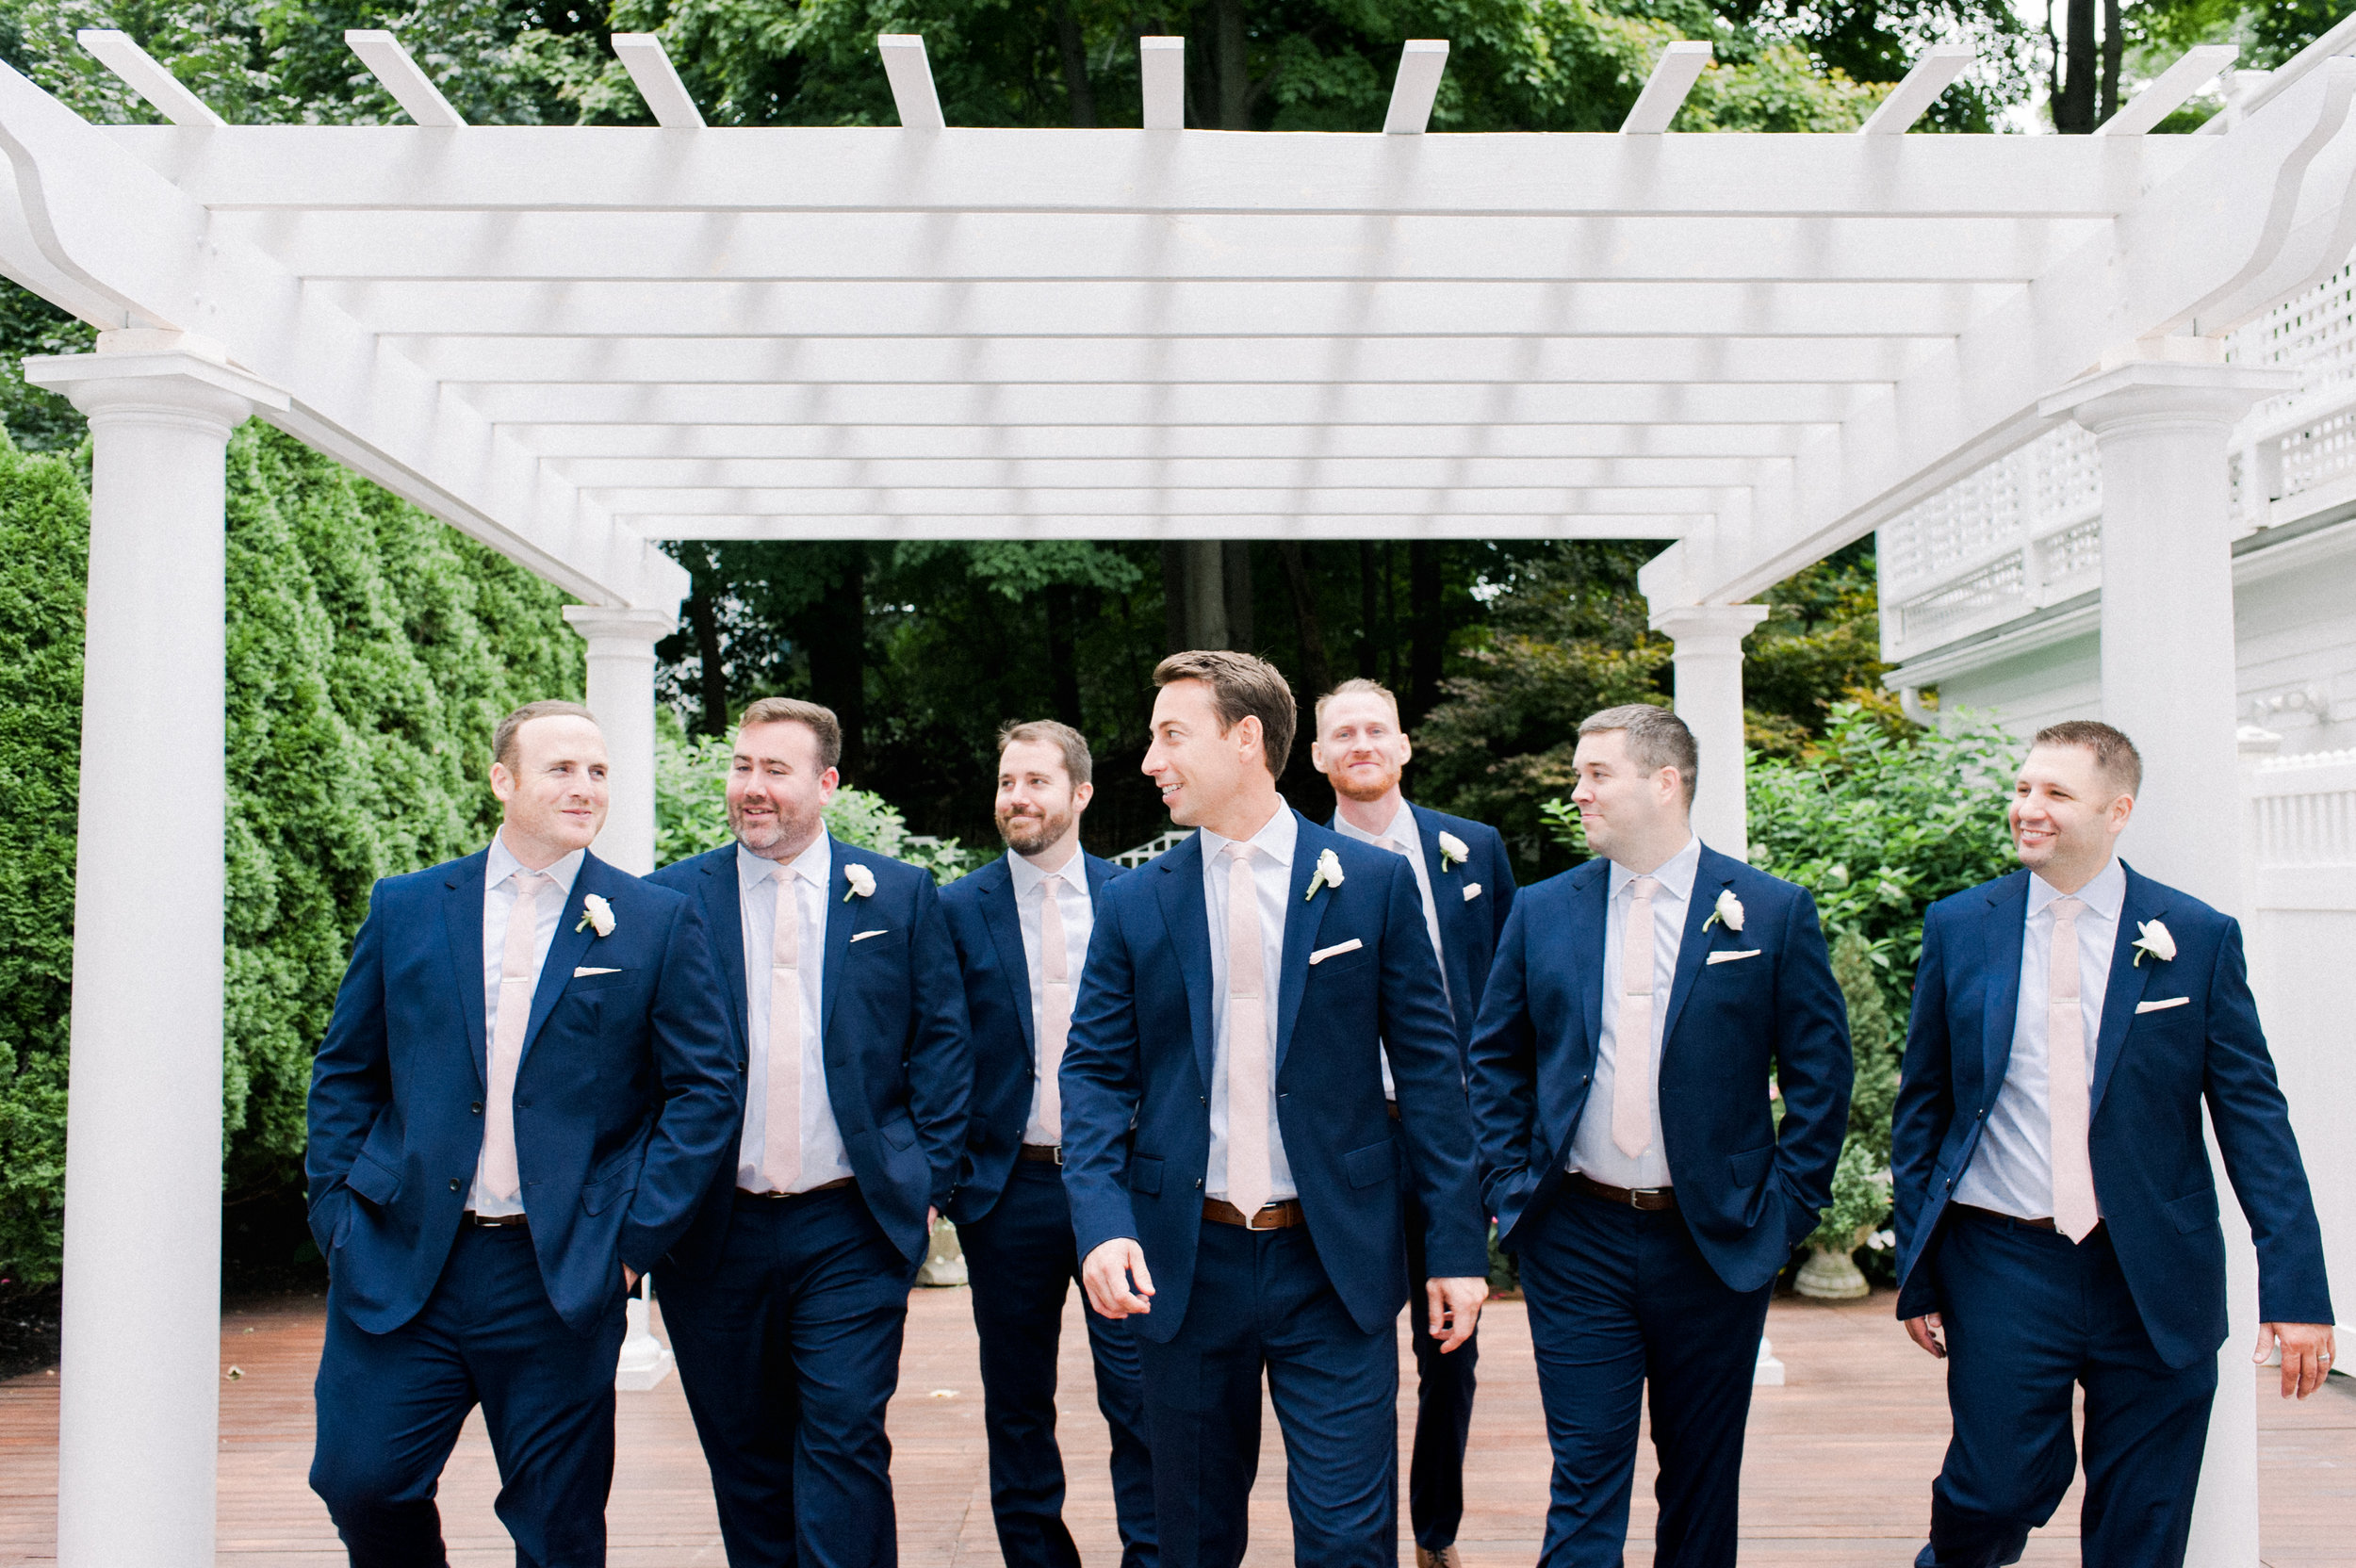 The Commons 1854 Topsfield MA wedding | Massachusetts wedding venue | Massachusetts wedding photos | North Shore MA Wedding photos | groomsmen photos | groomsmen portraits